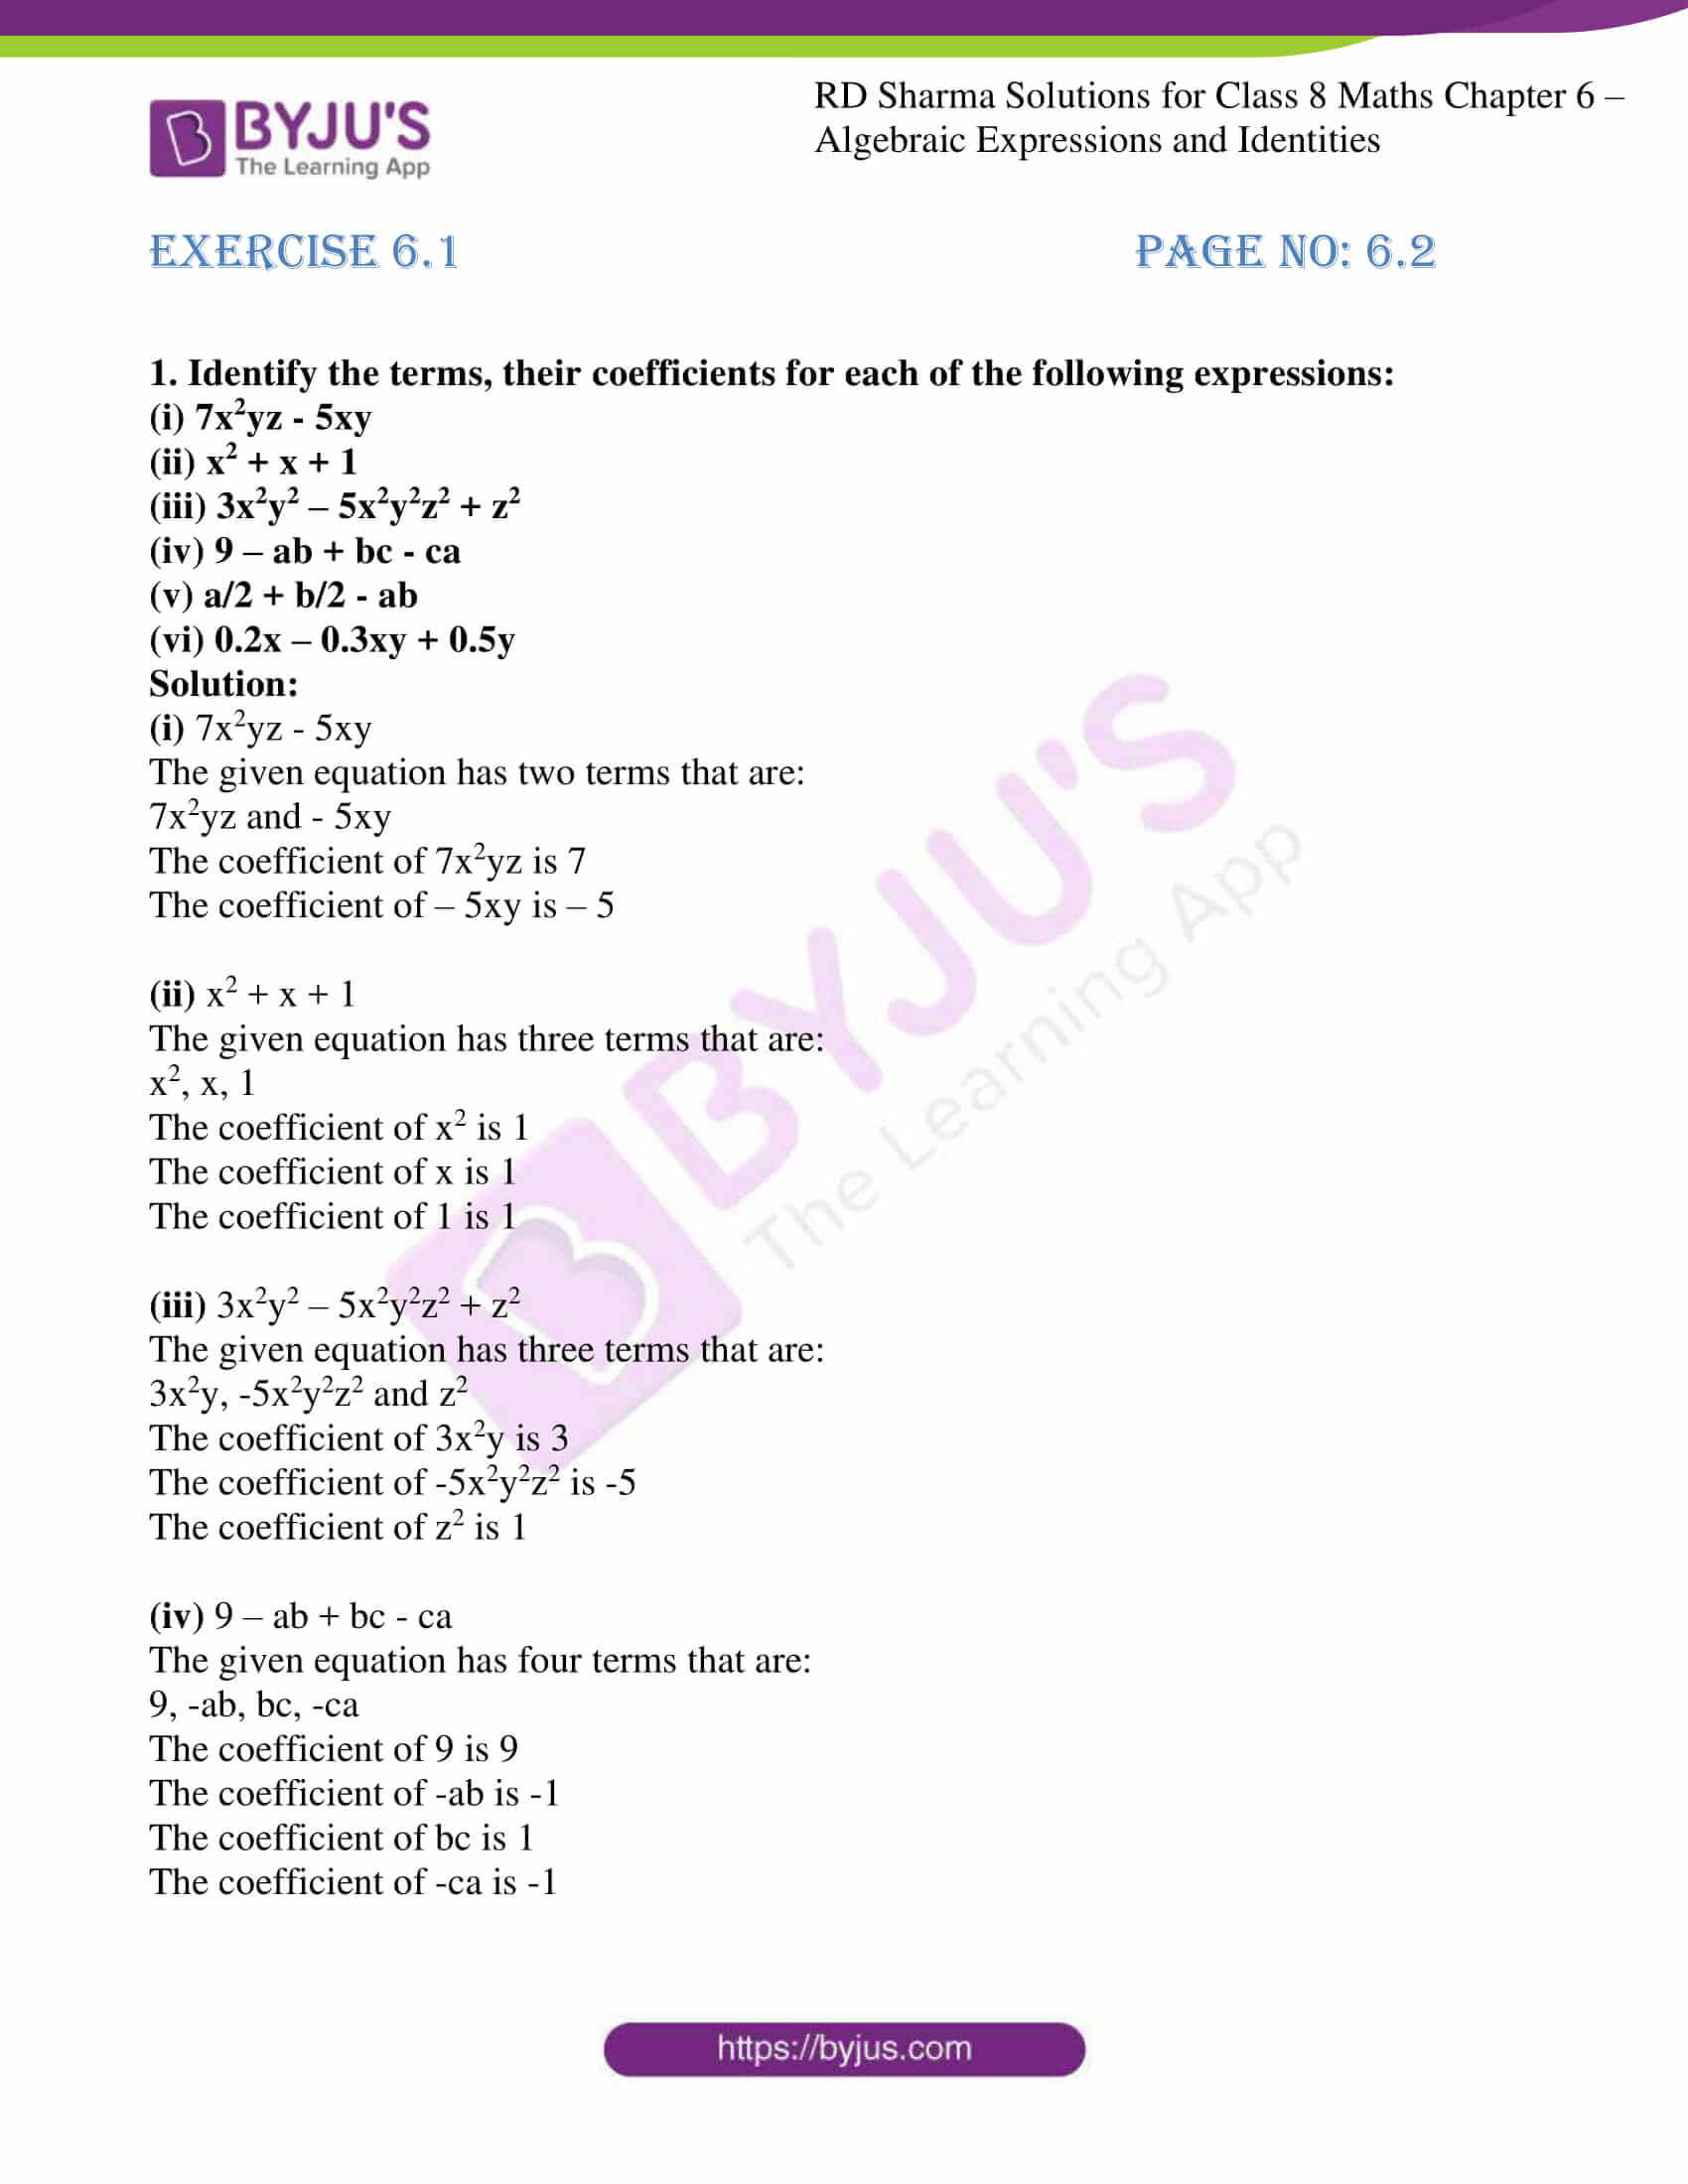 Rd Sharma Solutions For Class 8 Chapter 6